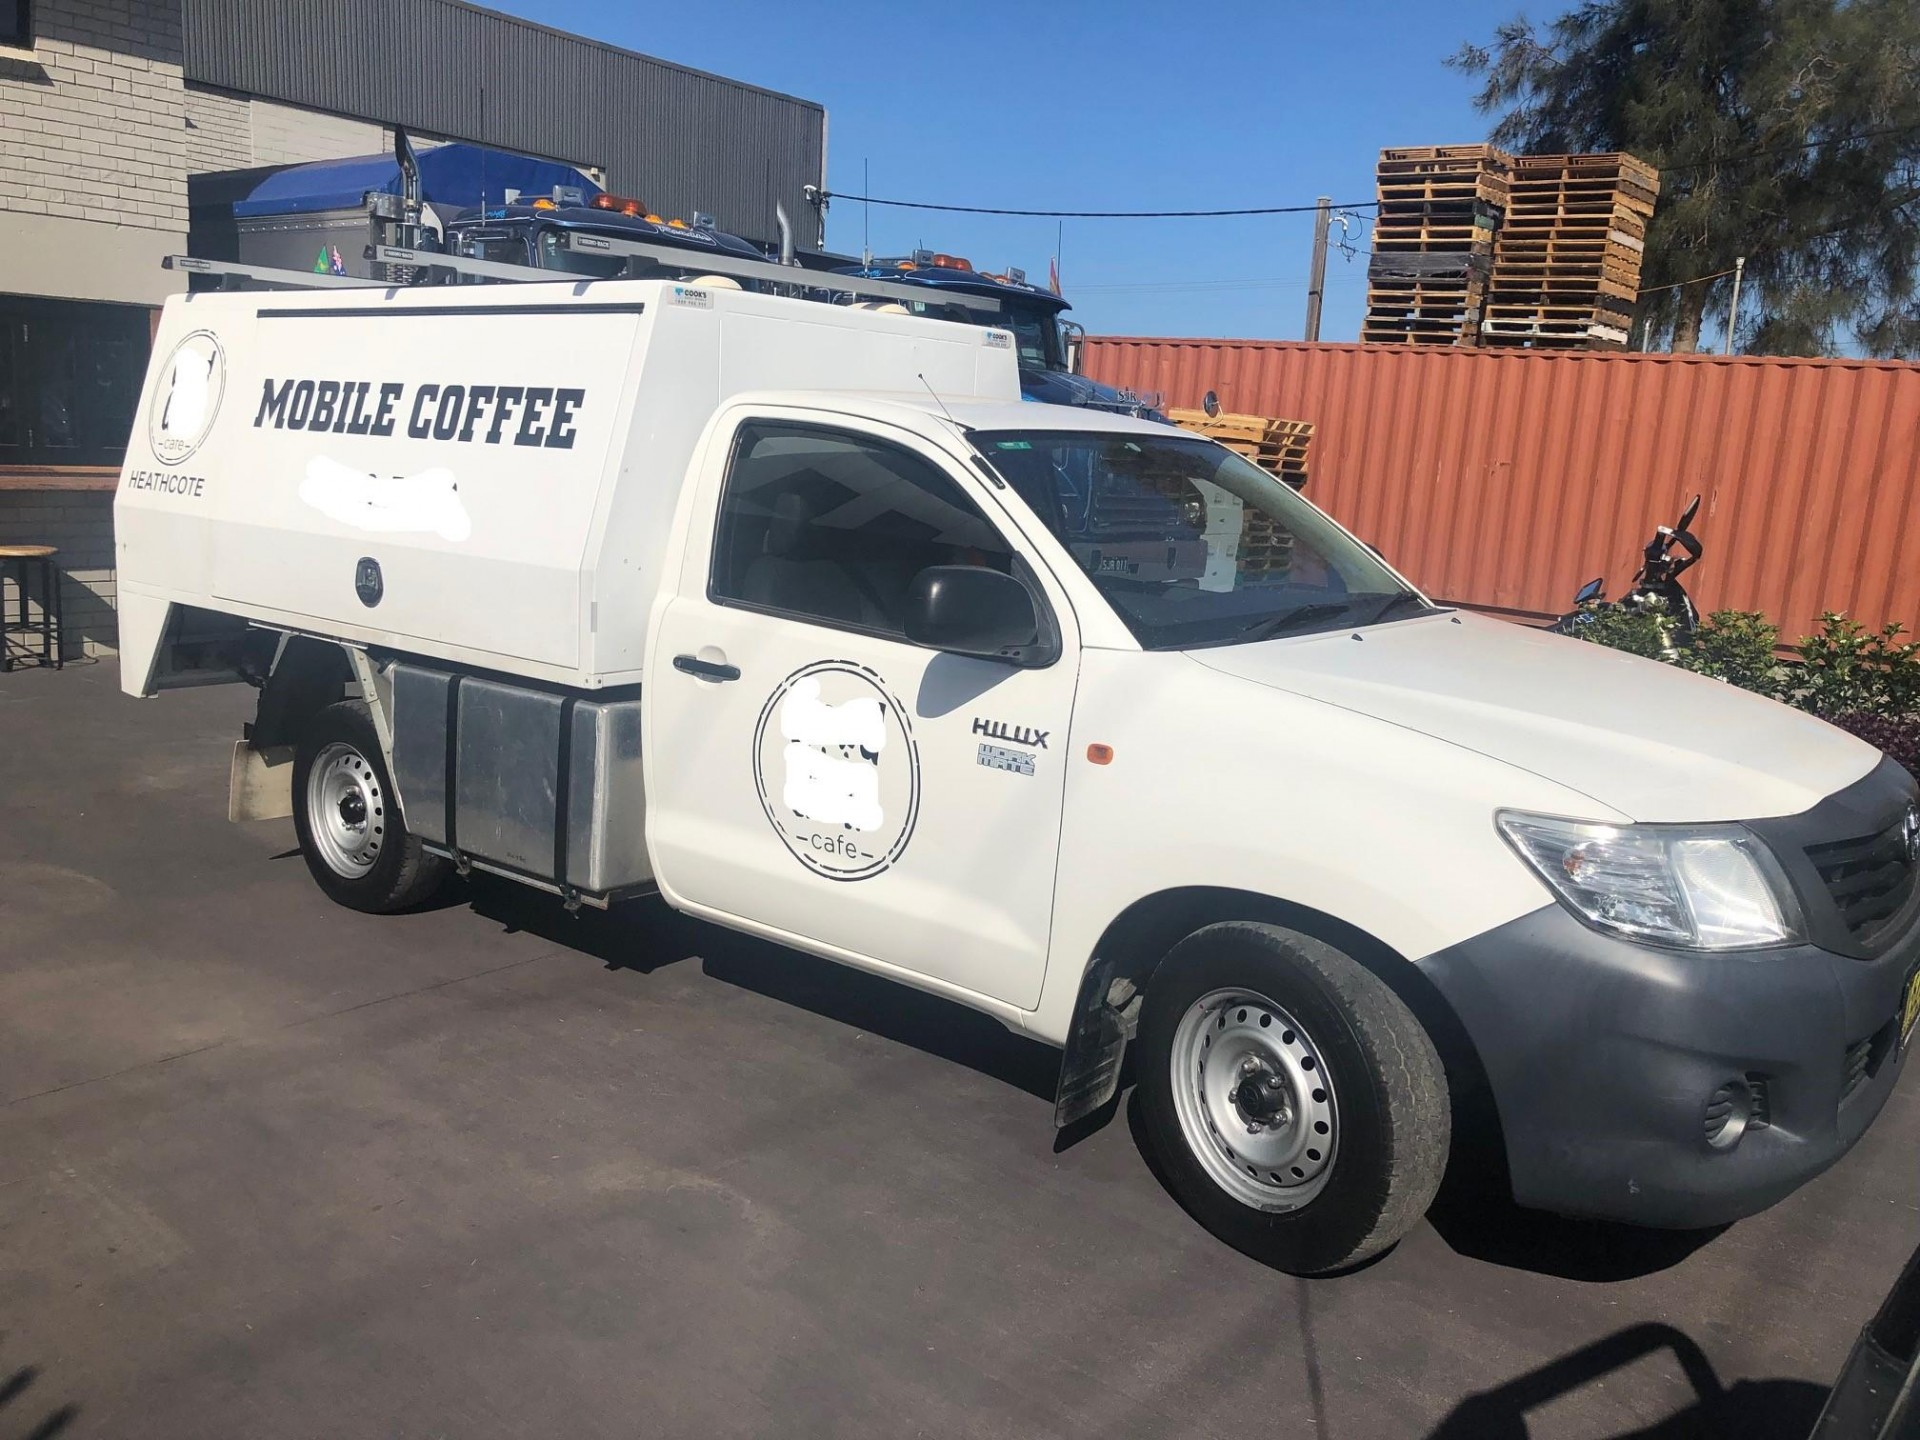 Mobile coffee truck for sale - Well established coffee run + NRL game day contra